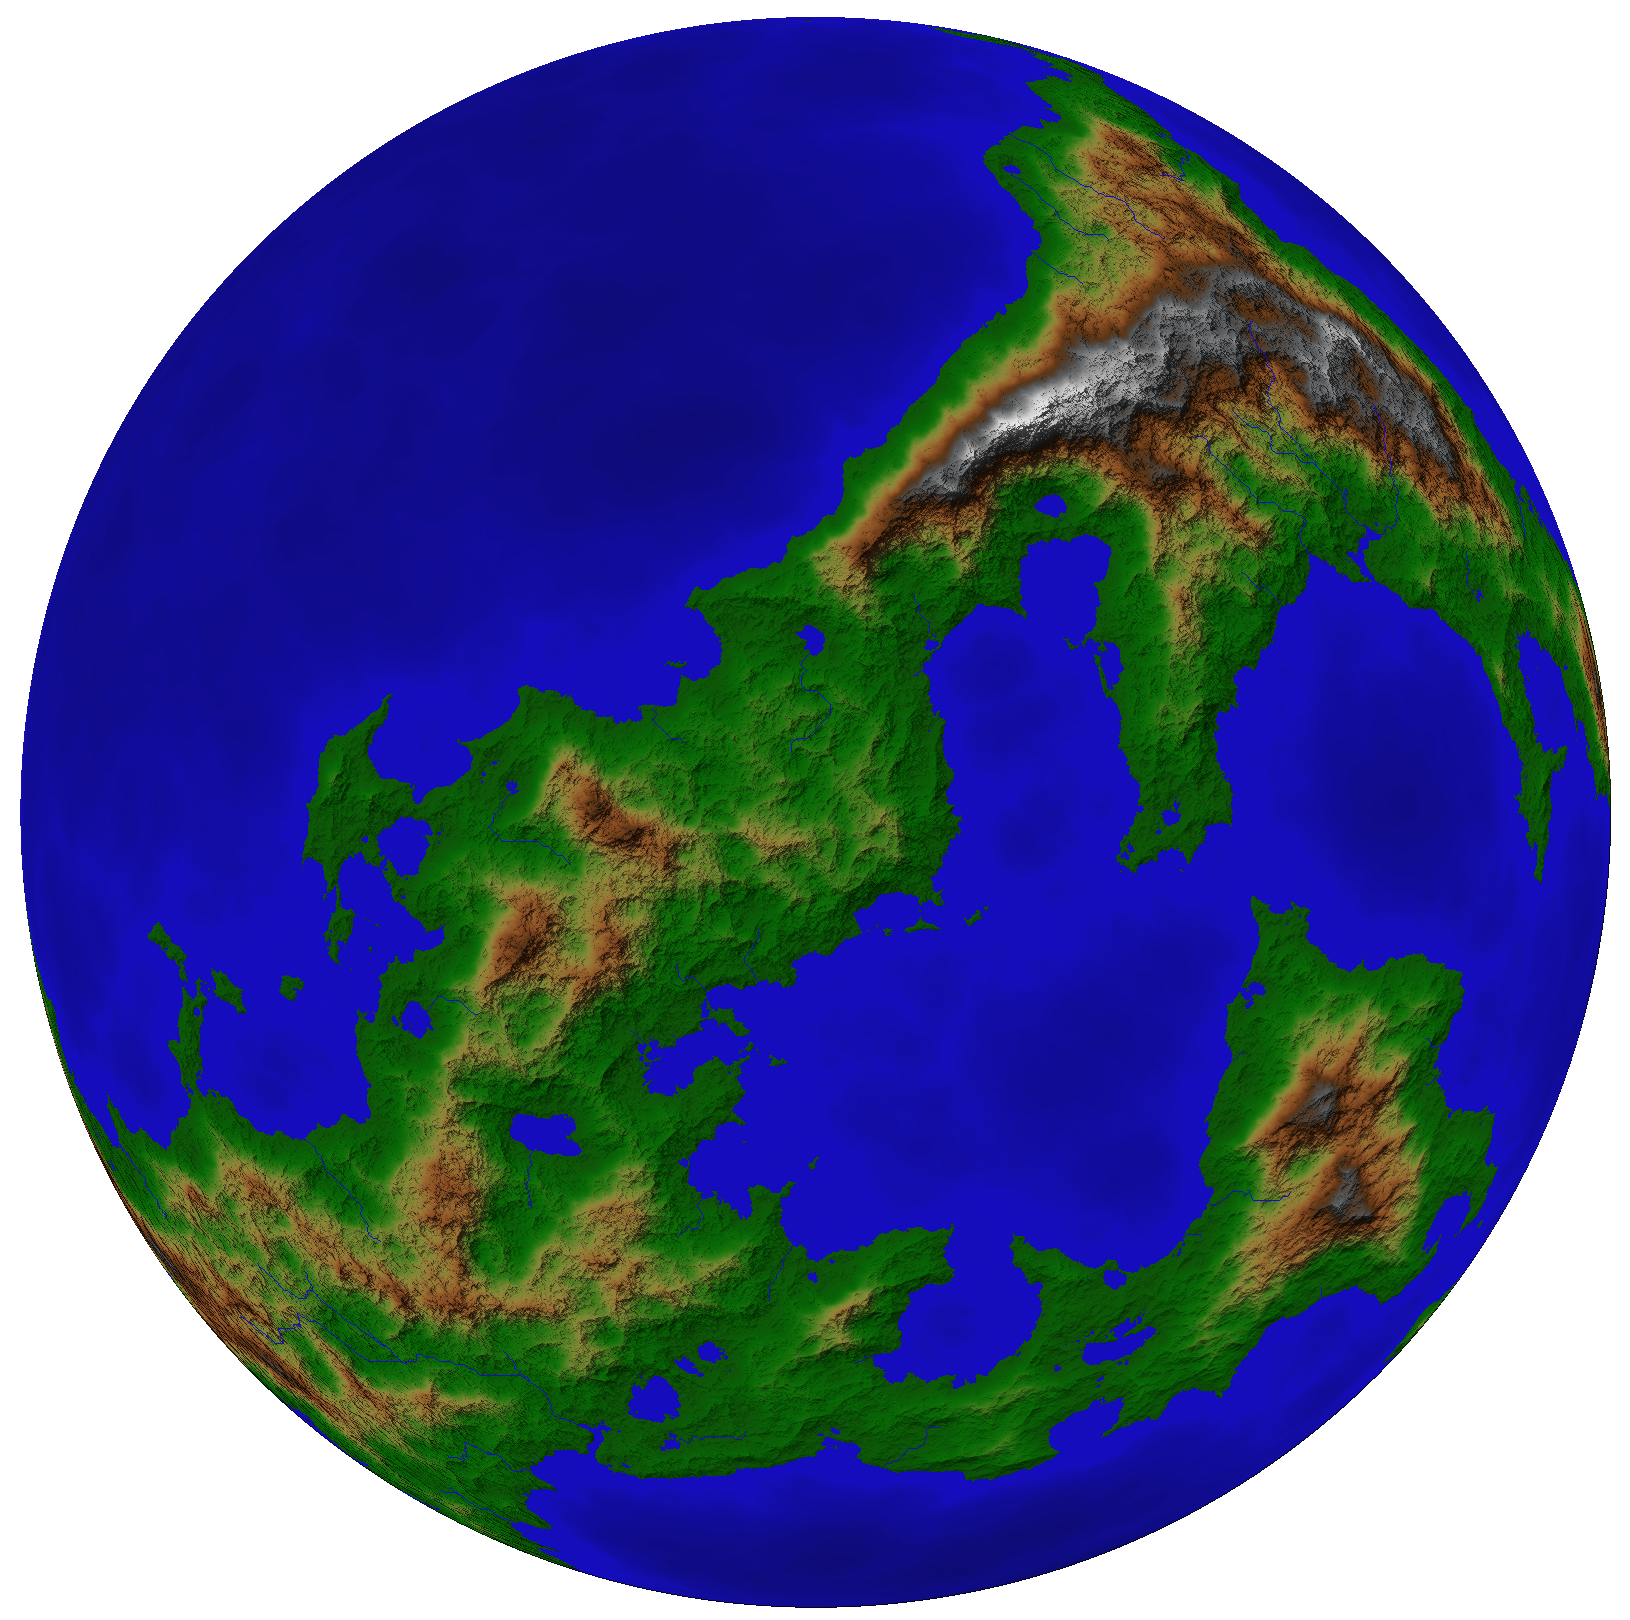 Transparent maps broken earth. Are your friend hollowlands